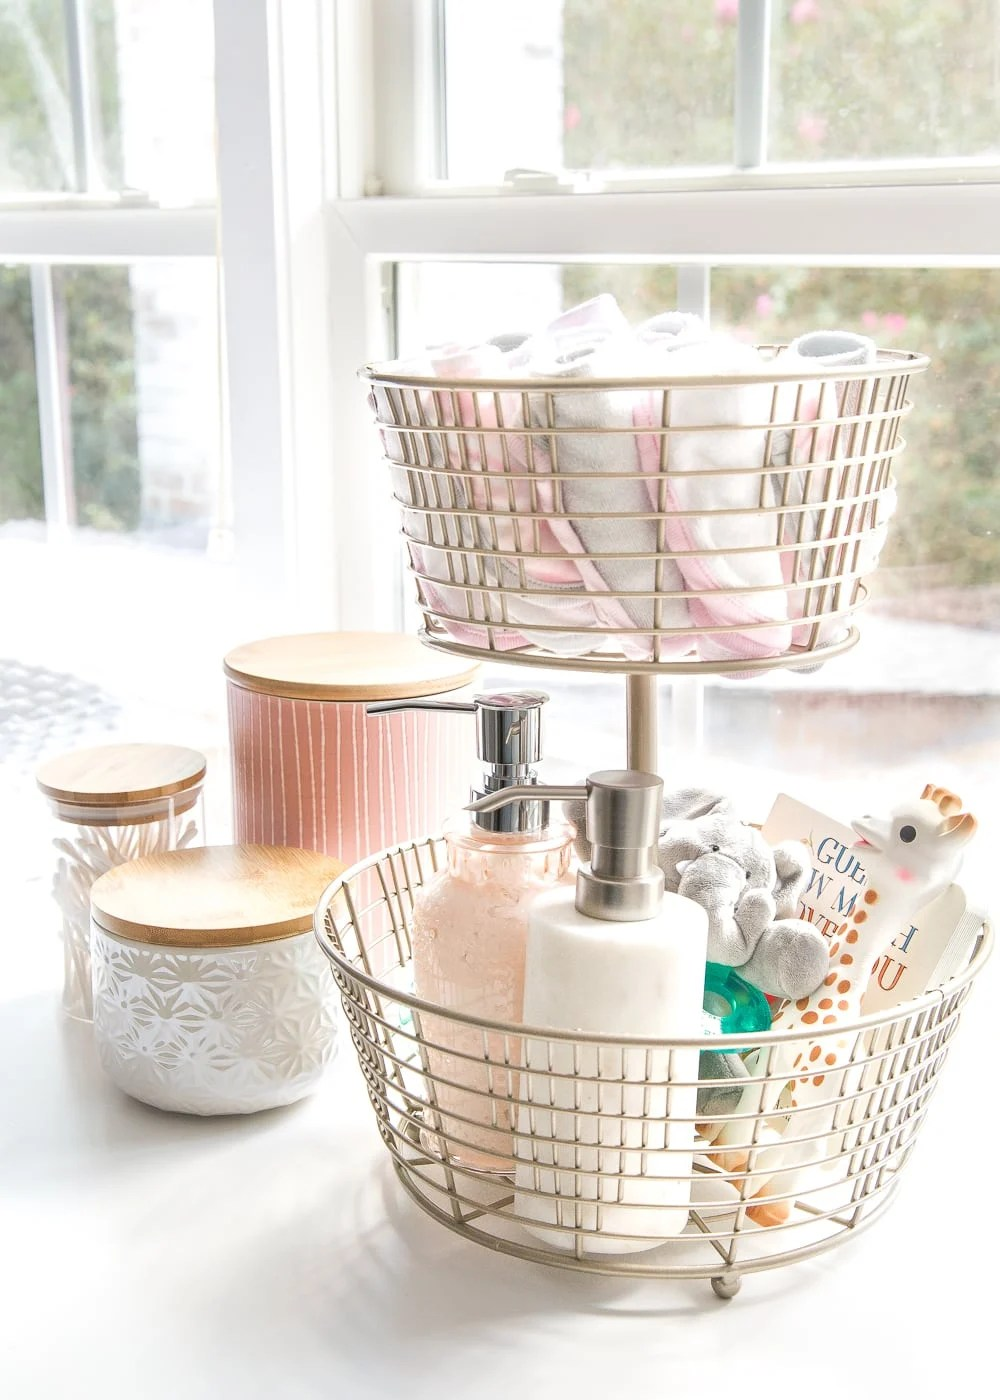 Nursery Organization | Use a tiered fruit basket from the kitchenware aisle to store baby washcloths, grabby toys, Wubbanubs, lotion, and hand sanitizer.